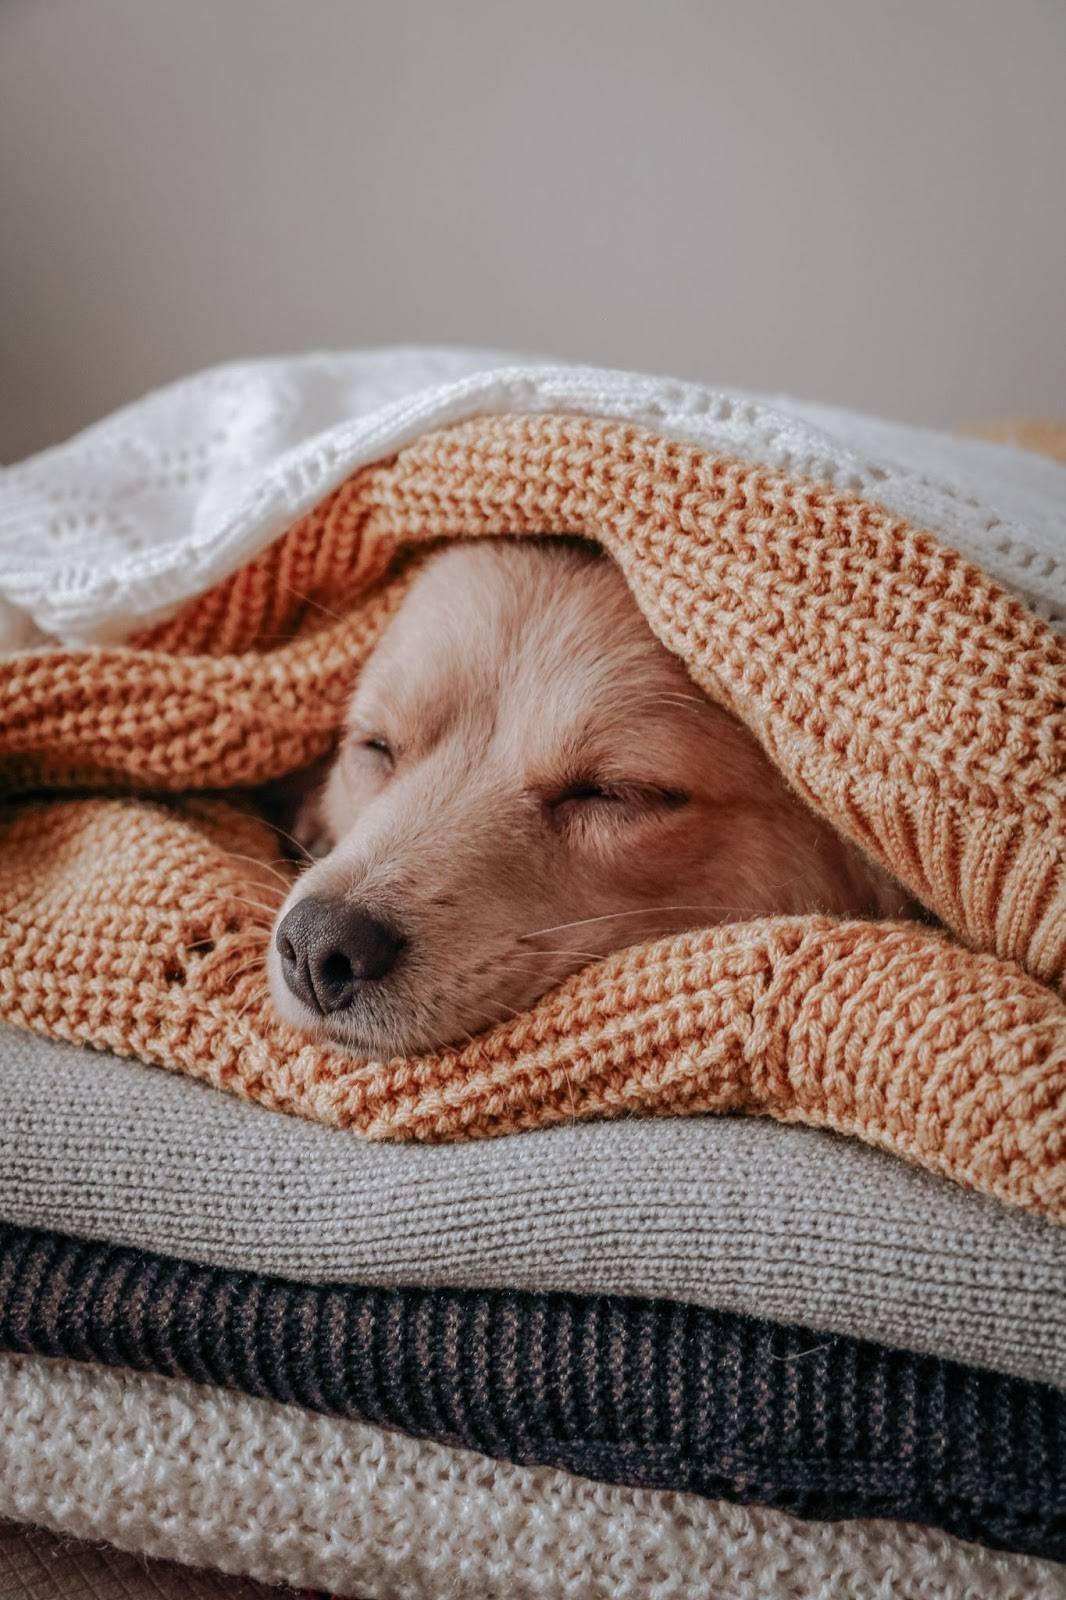 Dog in a pile of blankets - Photo by Sdf Rf on Unsplash